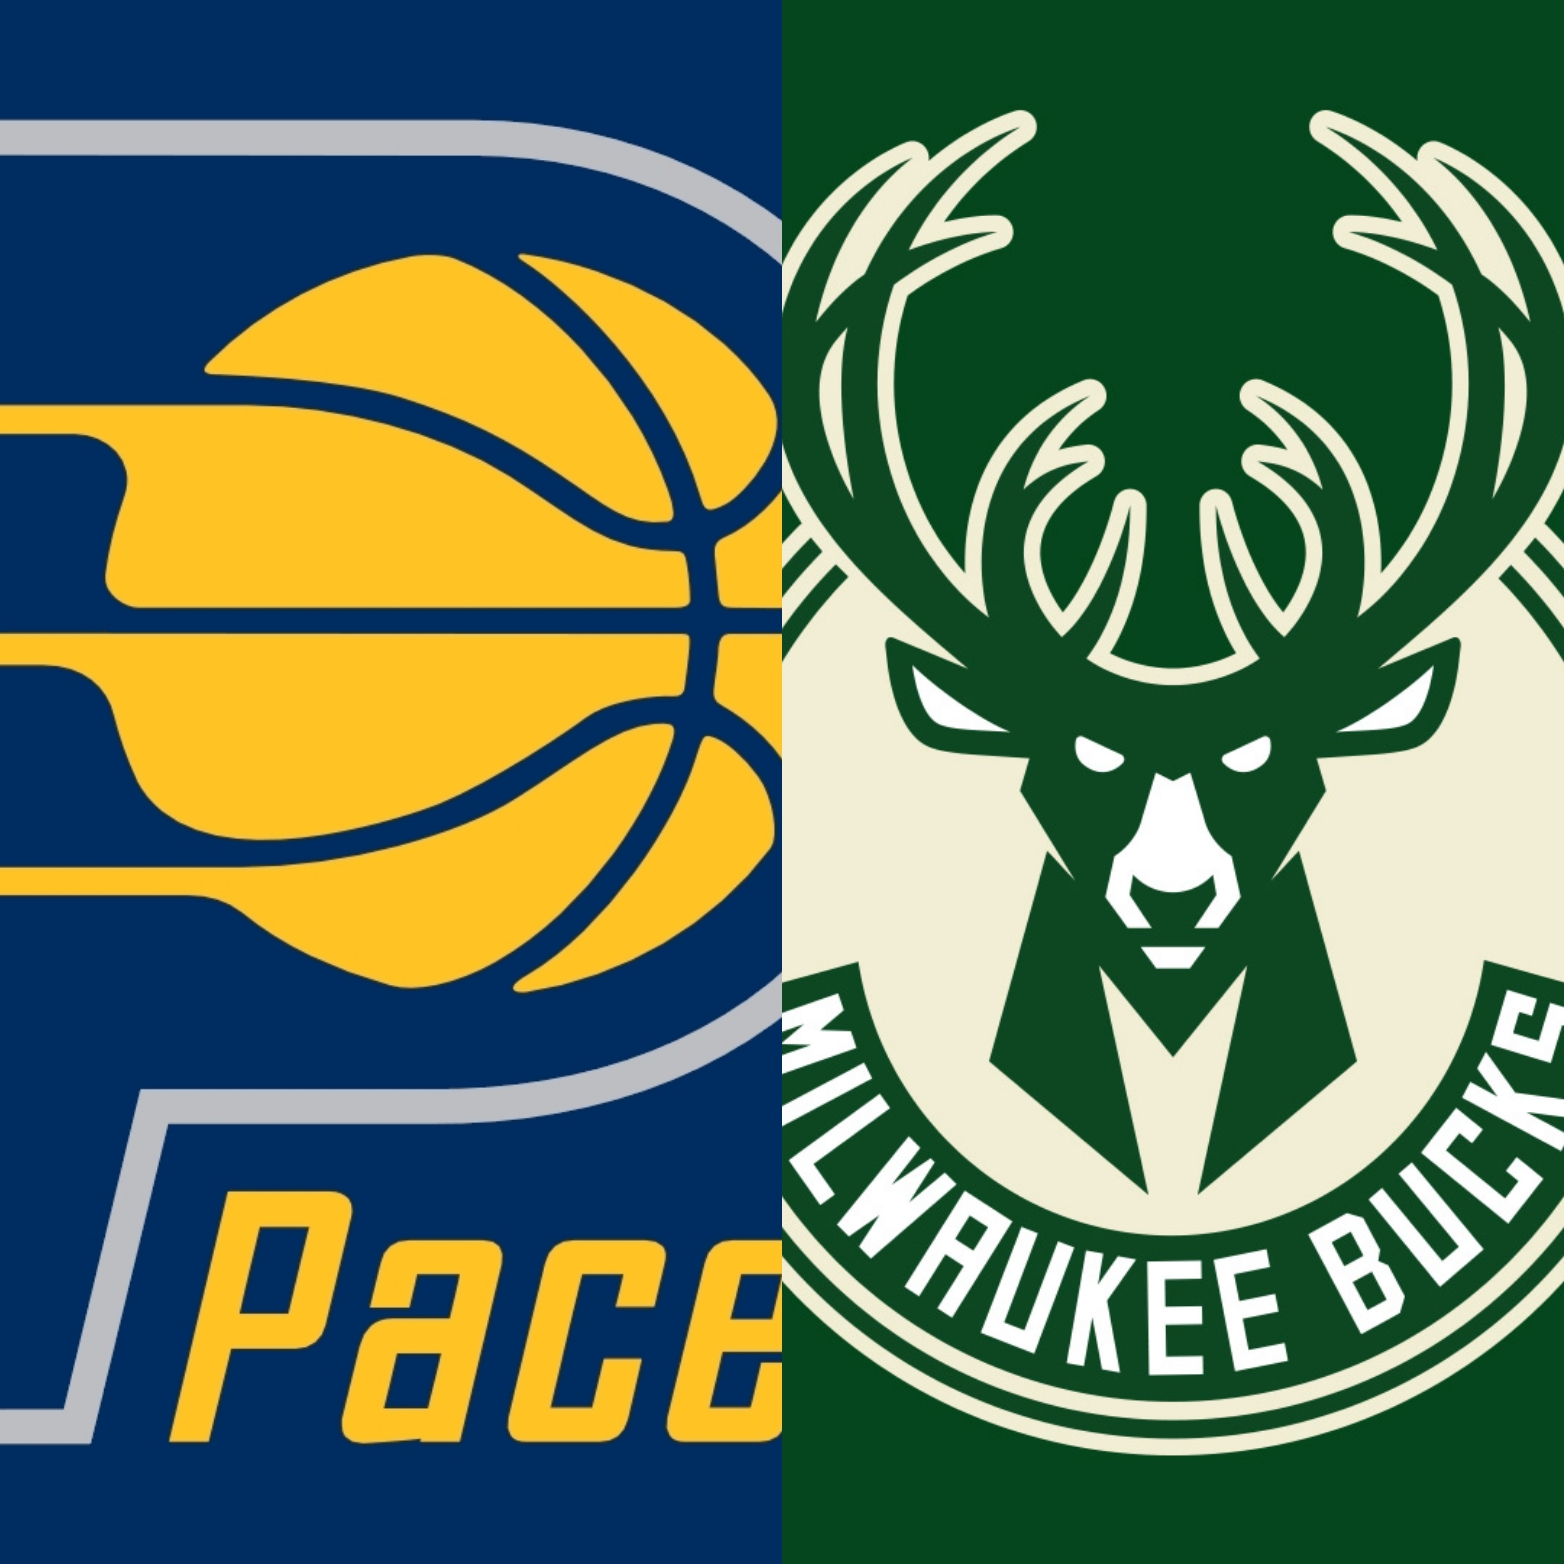 Milwaukee outscore, outpace Indiana, Basketball News & Top Stories